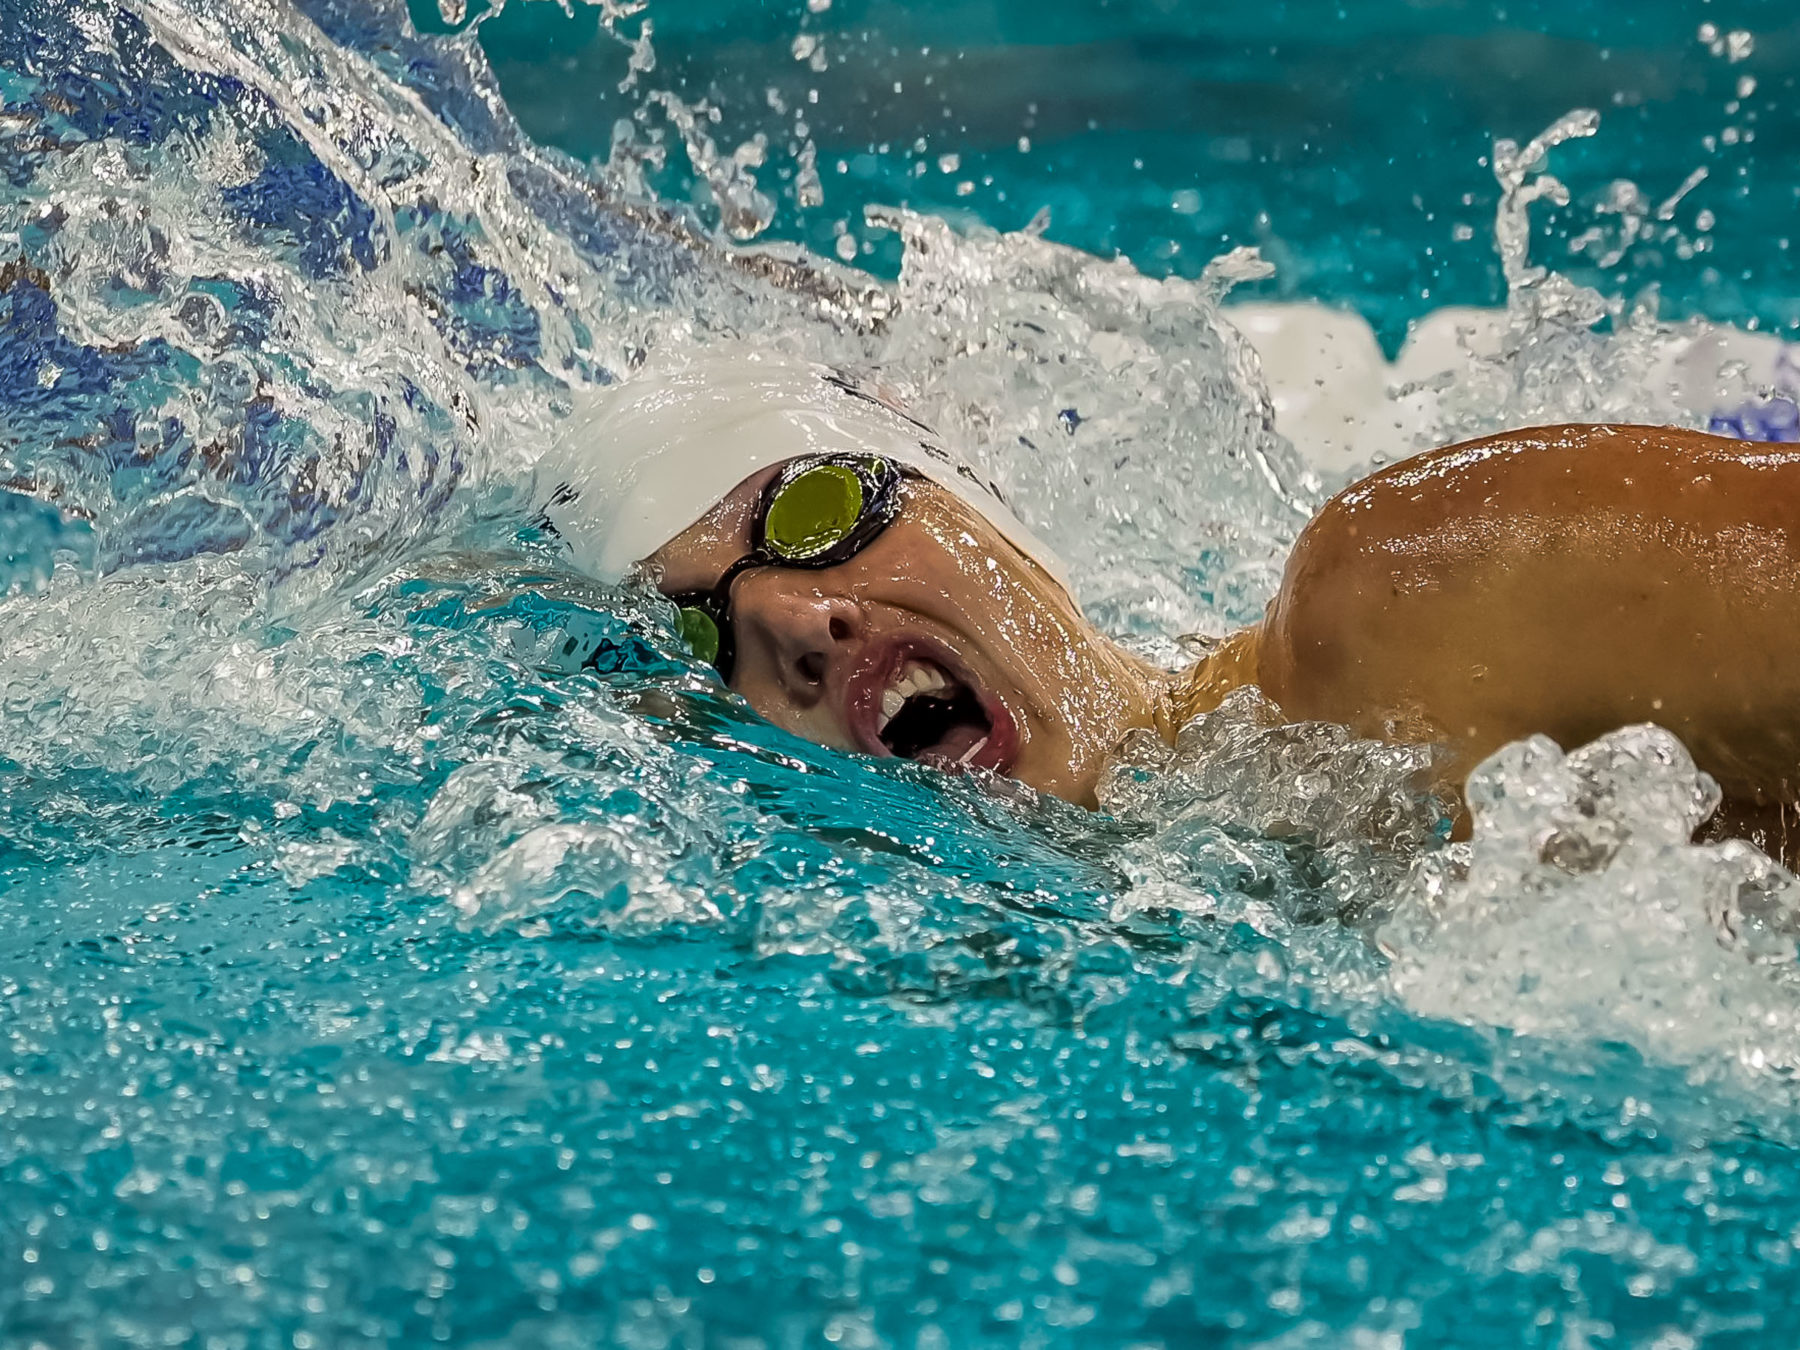 2021 Pac-12 Men's Swimming Championships Day Two Heats Live: Fail Leads Stacked 500 Field - Swimming World News